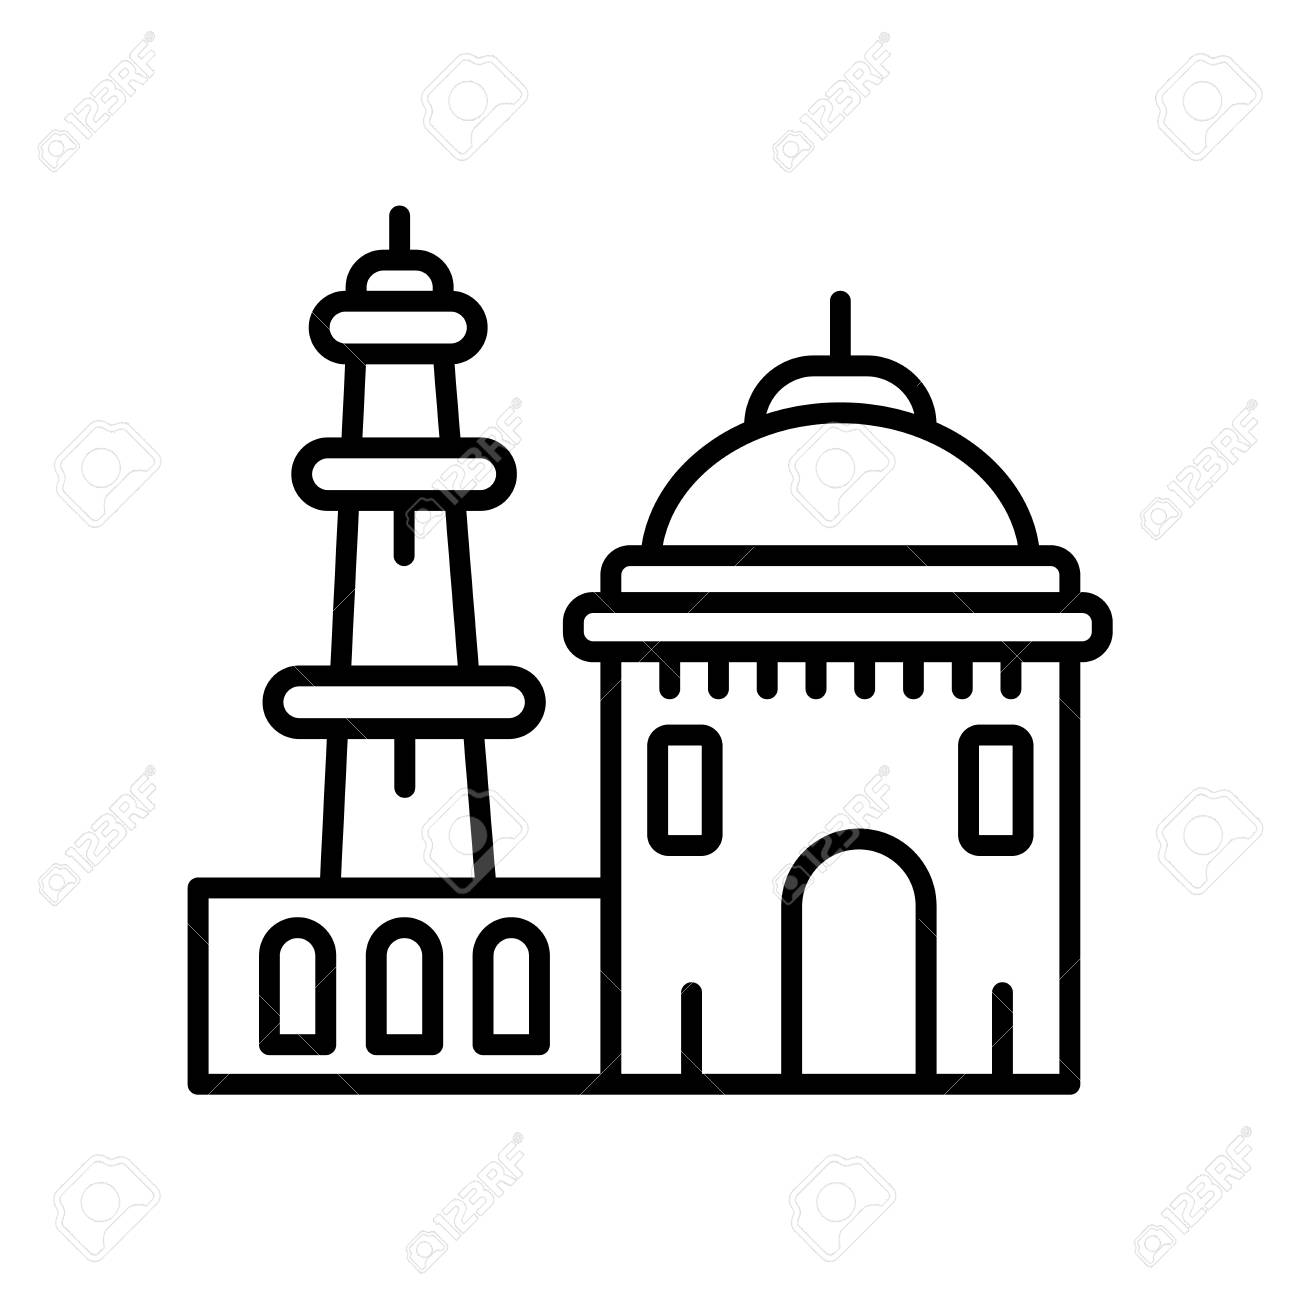 Qutb minar in new delhi icon vector isolated on white background qutb minar in new